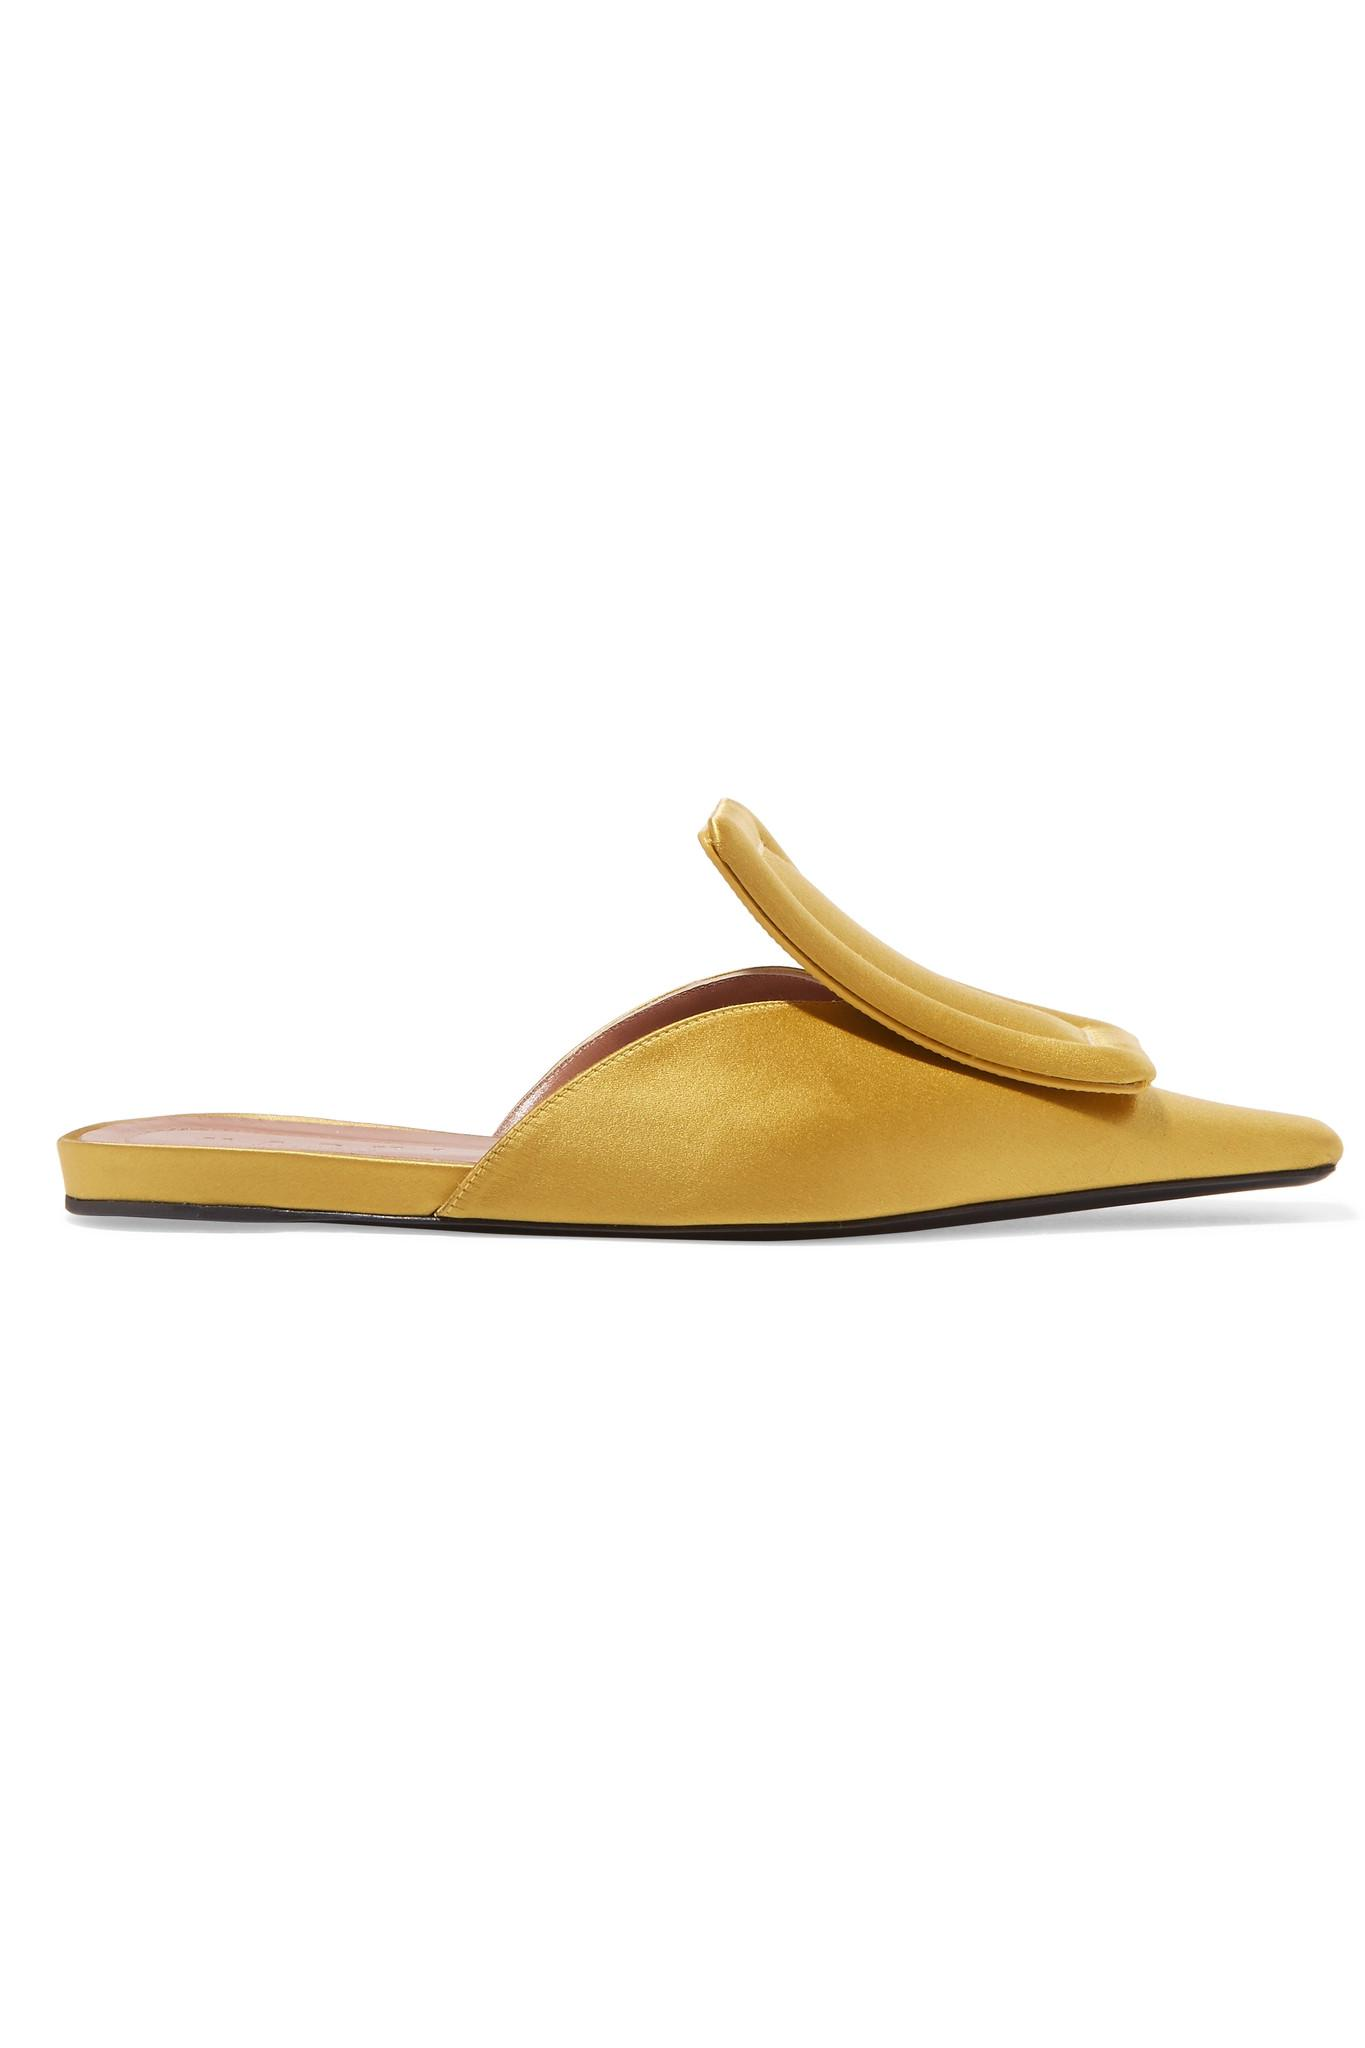 Satin Slippers - Mustard Marni